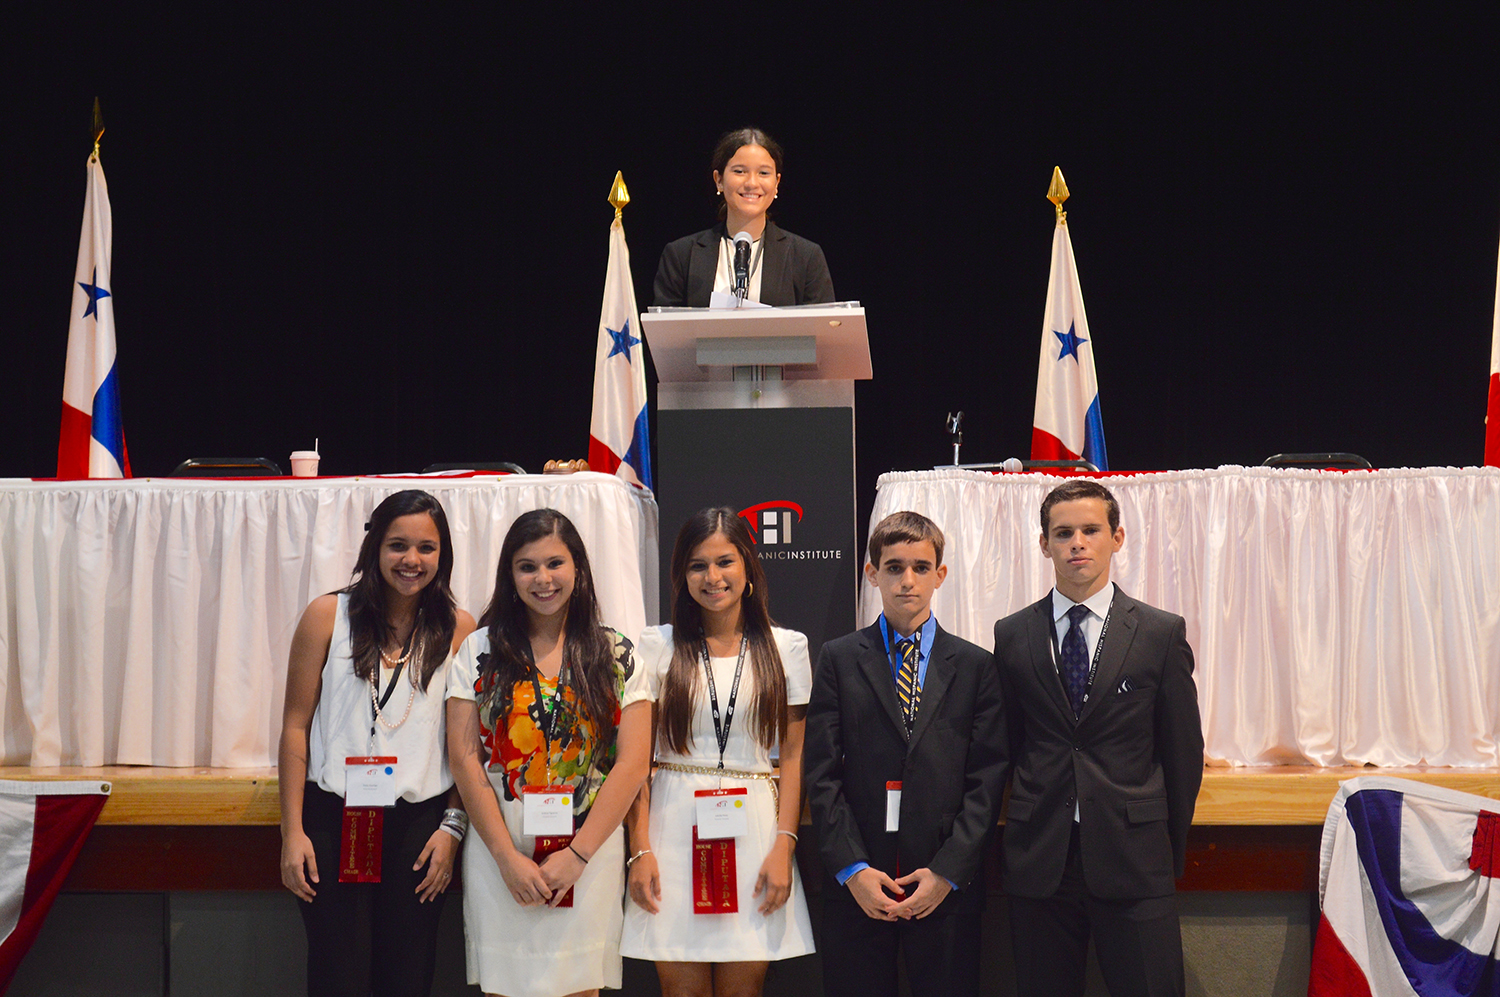 LDZ Las Americas 2015 Officers